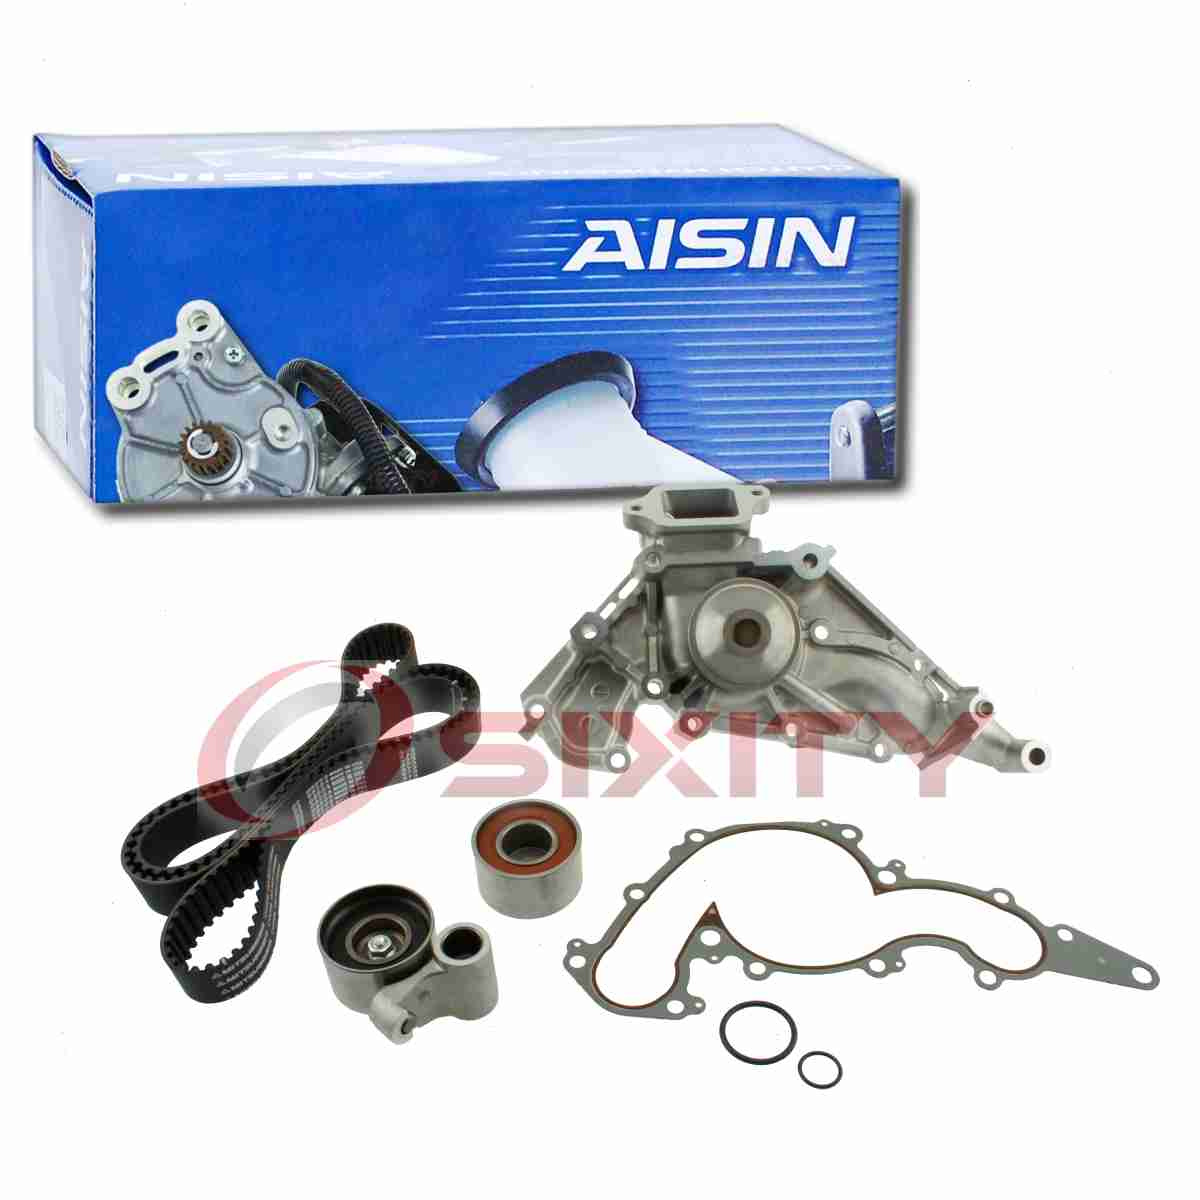 AISIN Timing Belt Kit W/ Water Pump For 2001-2009 Toyota